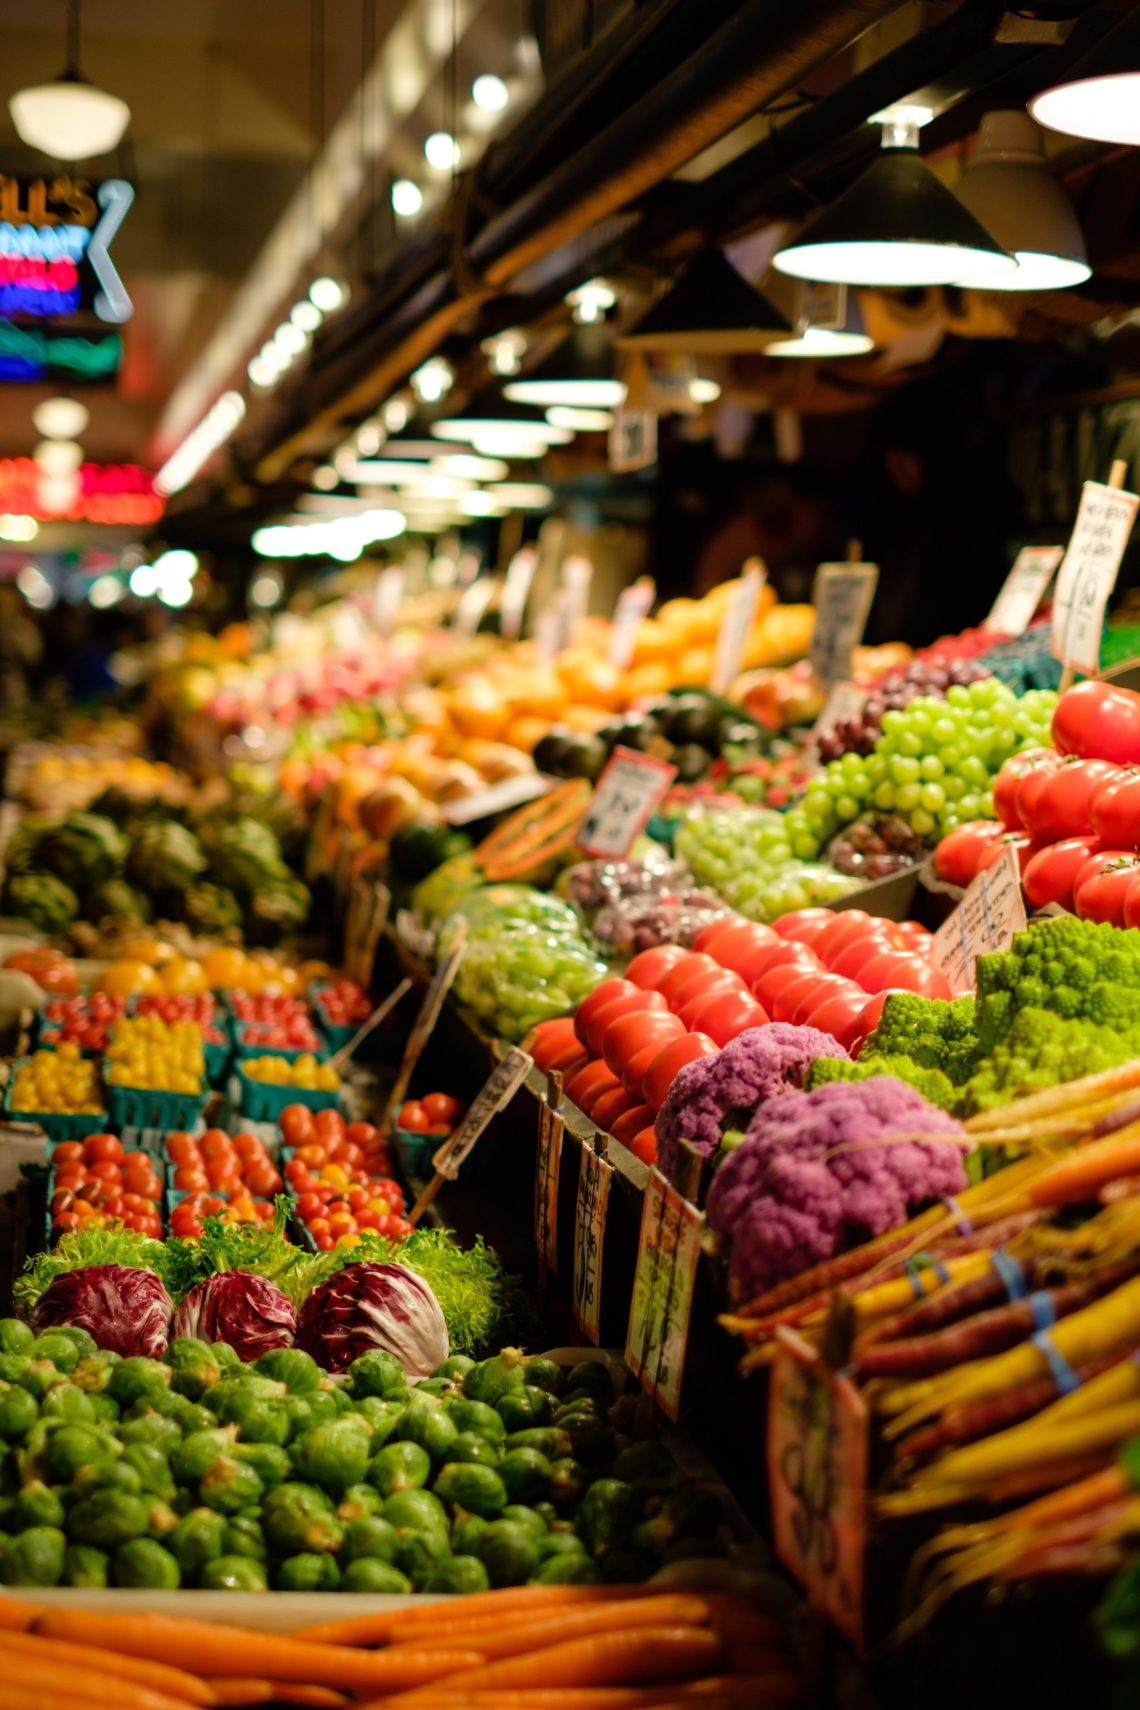 A grocery store vegetable aisle that are migraine diet safe